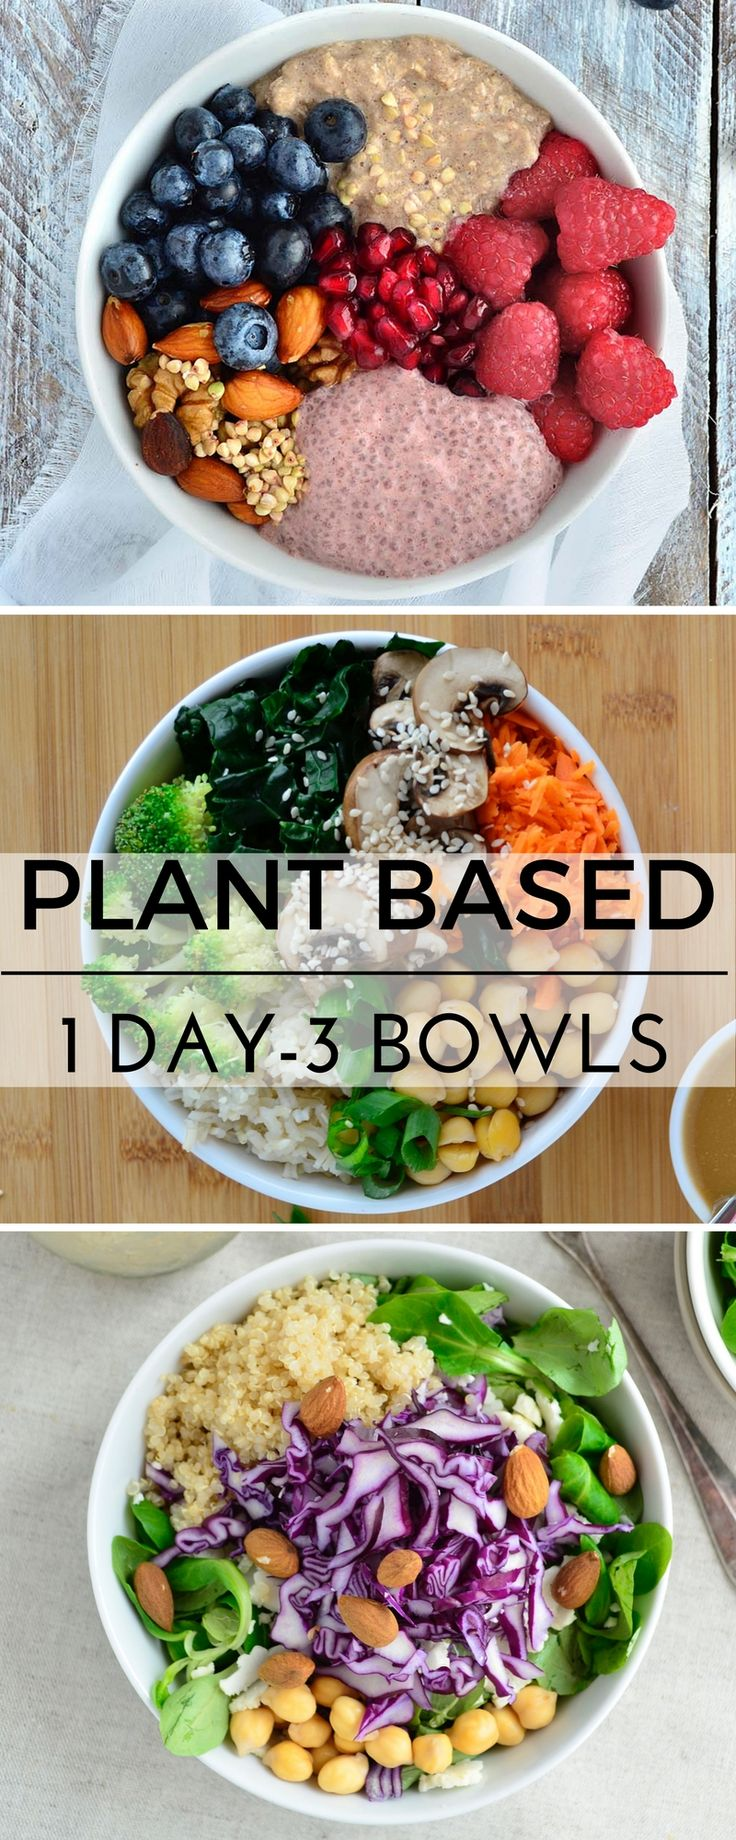 Diet plan to lose weight plant based recipes vegan recipes diet forumfinder Image collections